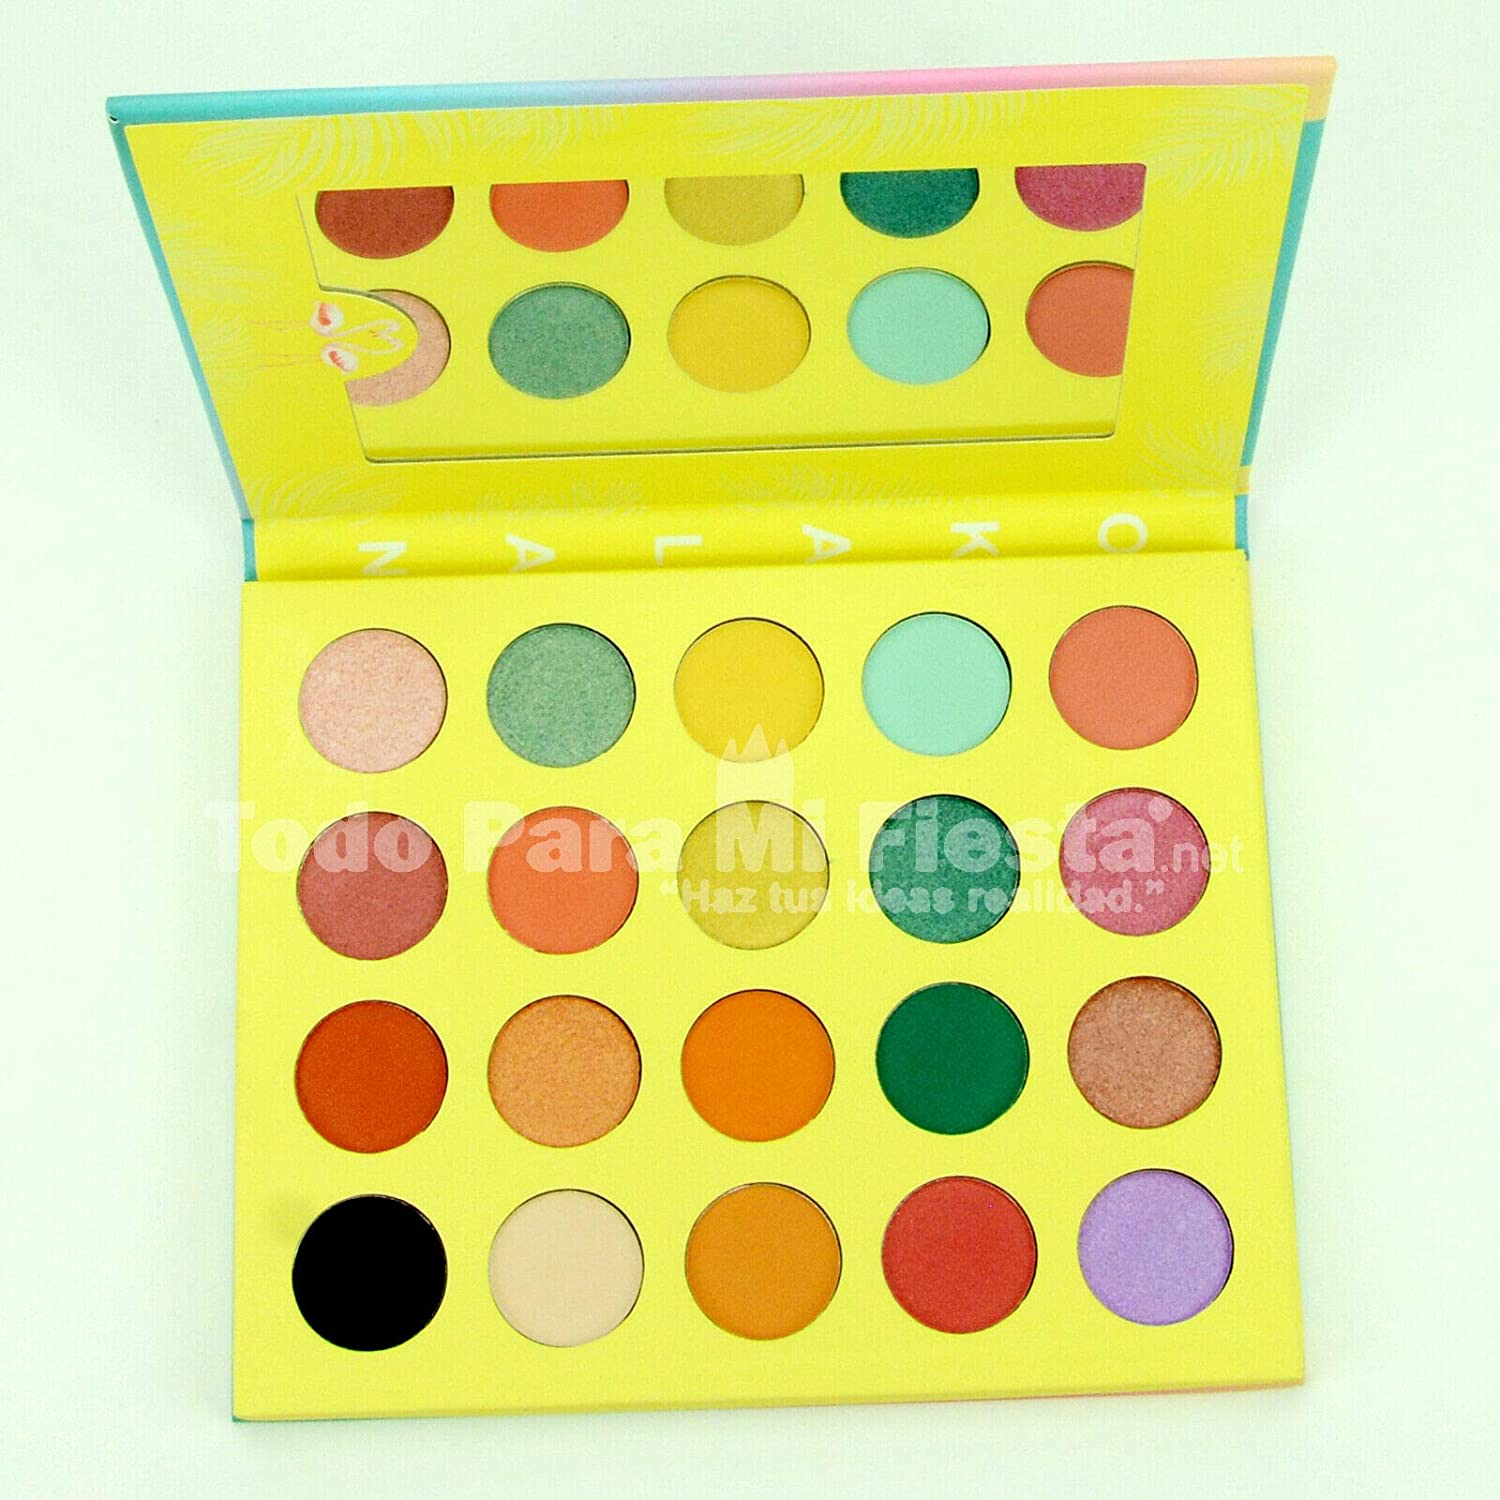 Okalan Paradise Eyeshadow Palette High Pigmented Saturated Shades